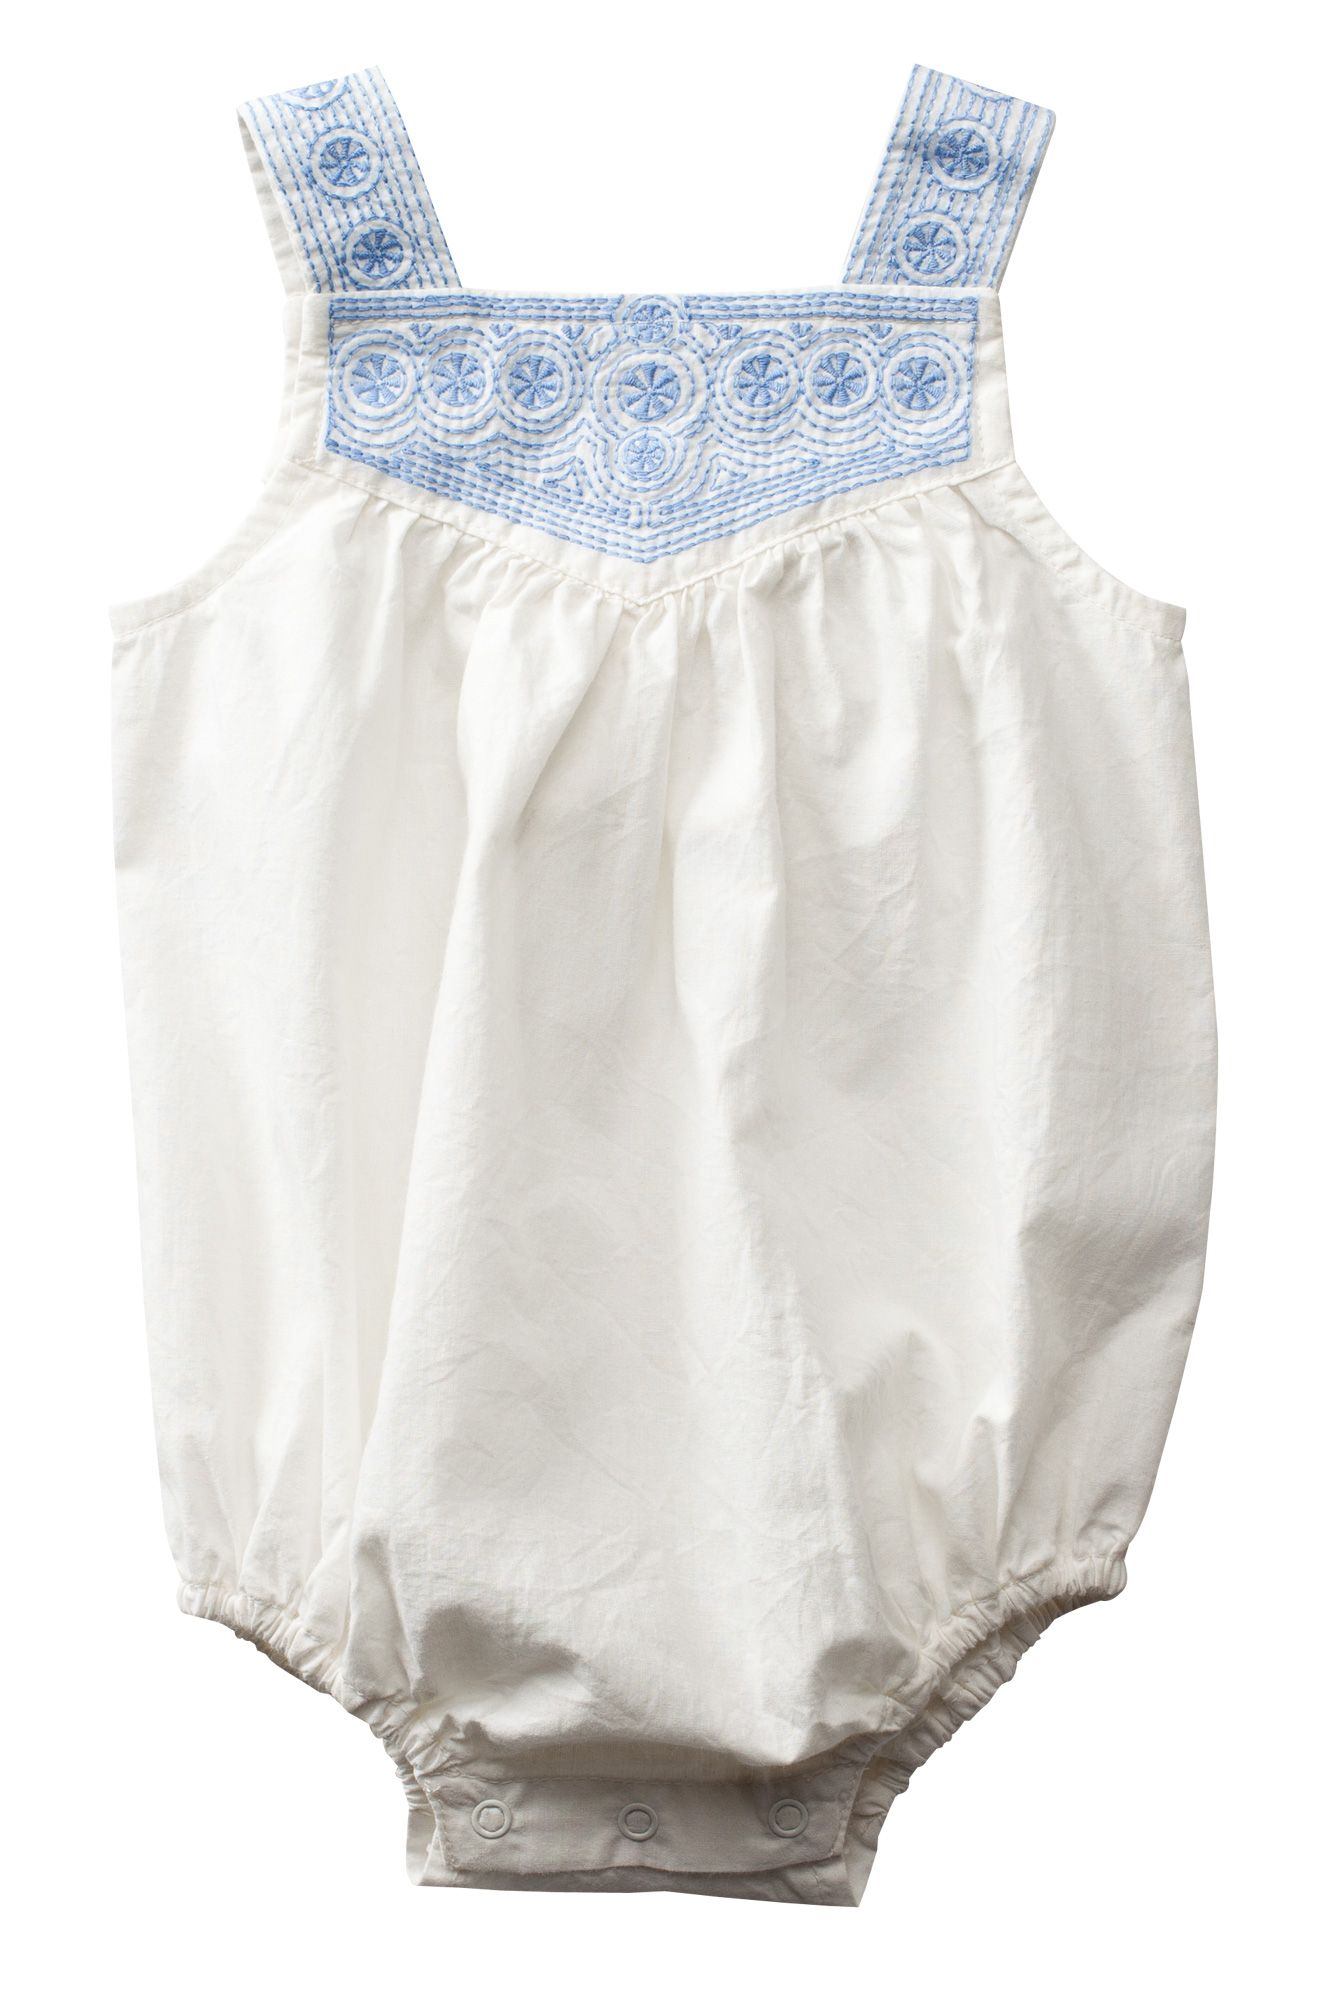 Woven Embroidered Bodysuit | Purebaby